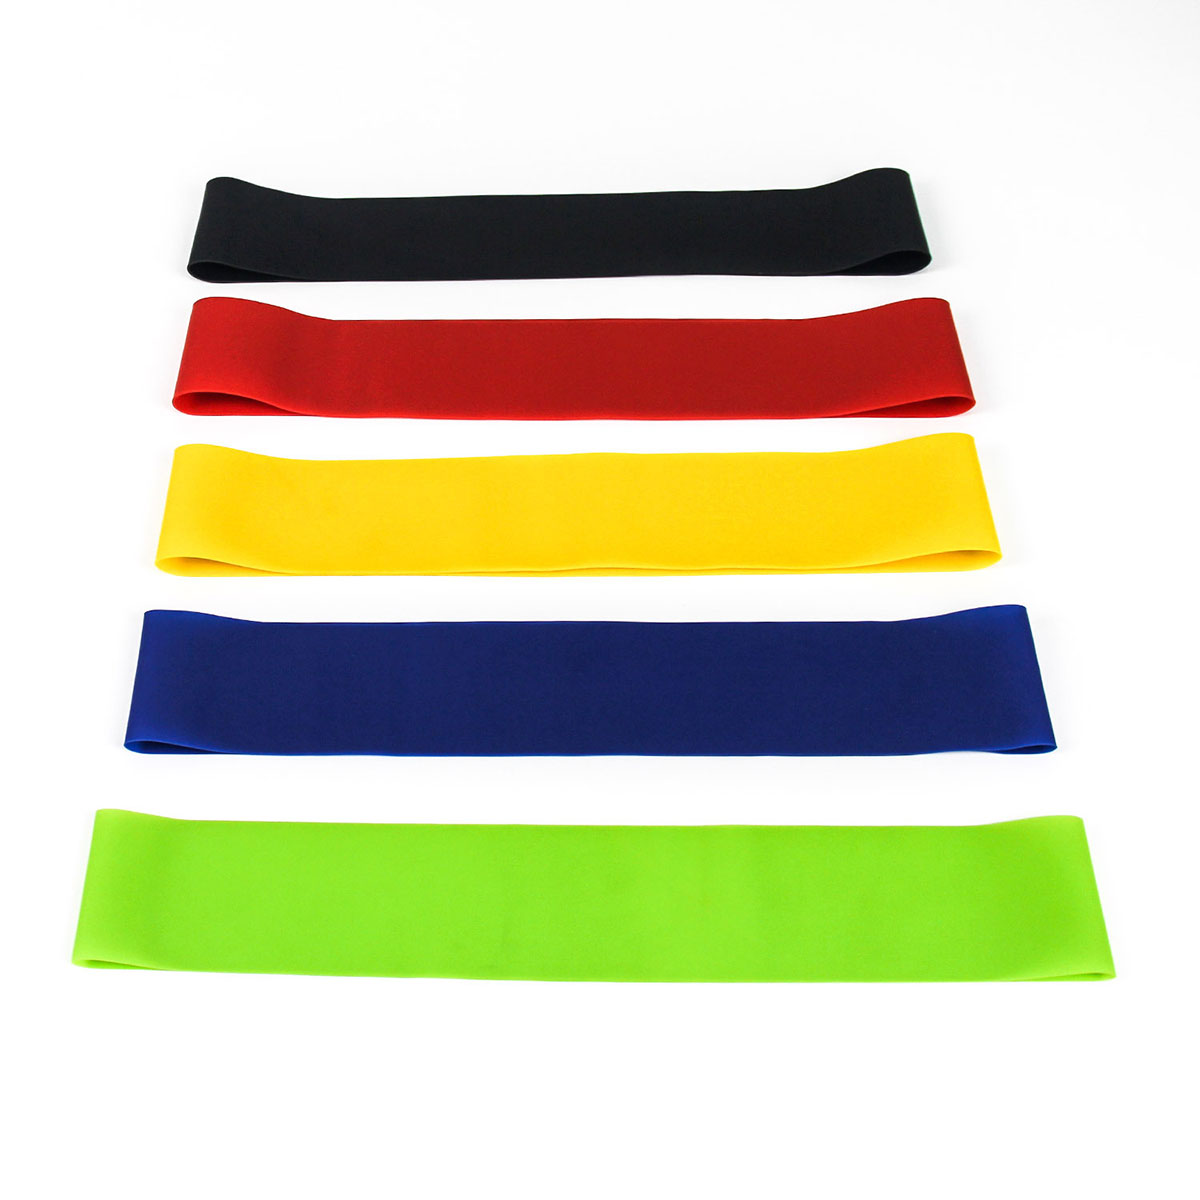 Gym Fitness Resistance Bands for Yoga Stretch Pull Up Assist Bands Latex Elastic Stretch Band Mixed Color 1 Set ( 5 PCs/Set)